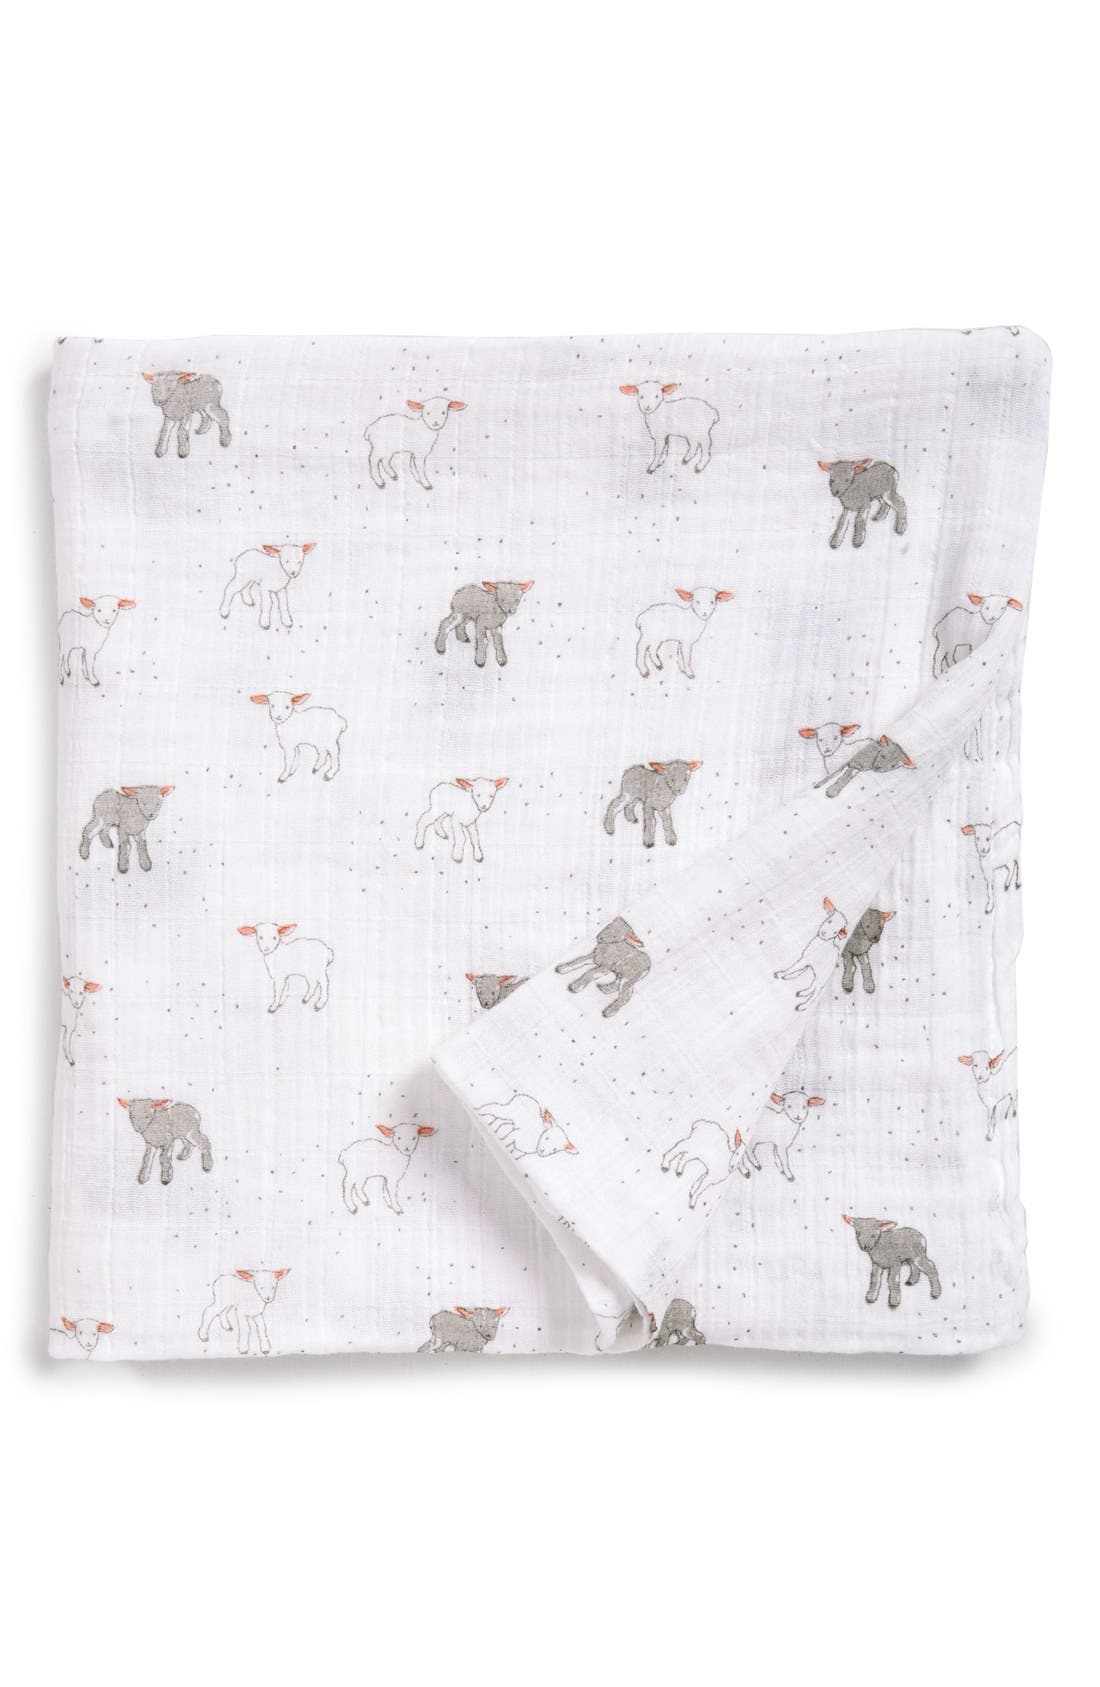 Little Lamb Swaddle Blanket,                             Main thumbnail 1, color,                             WHITE